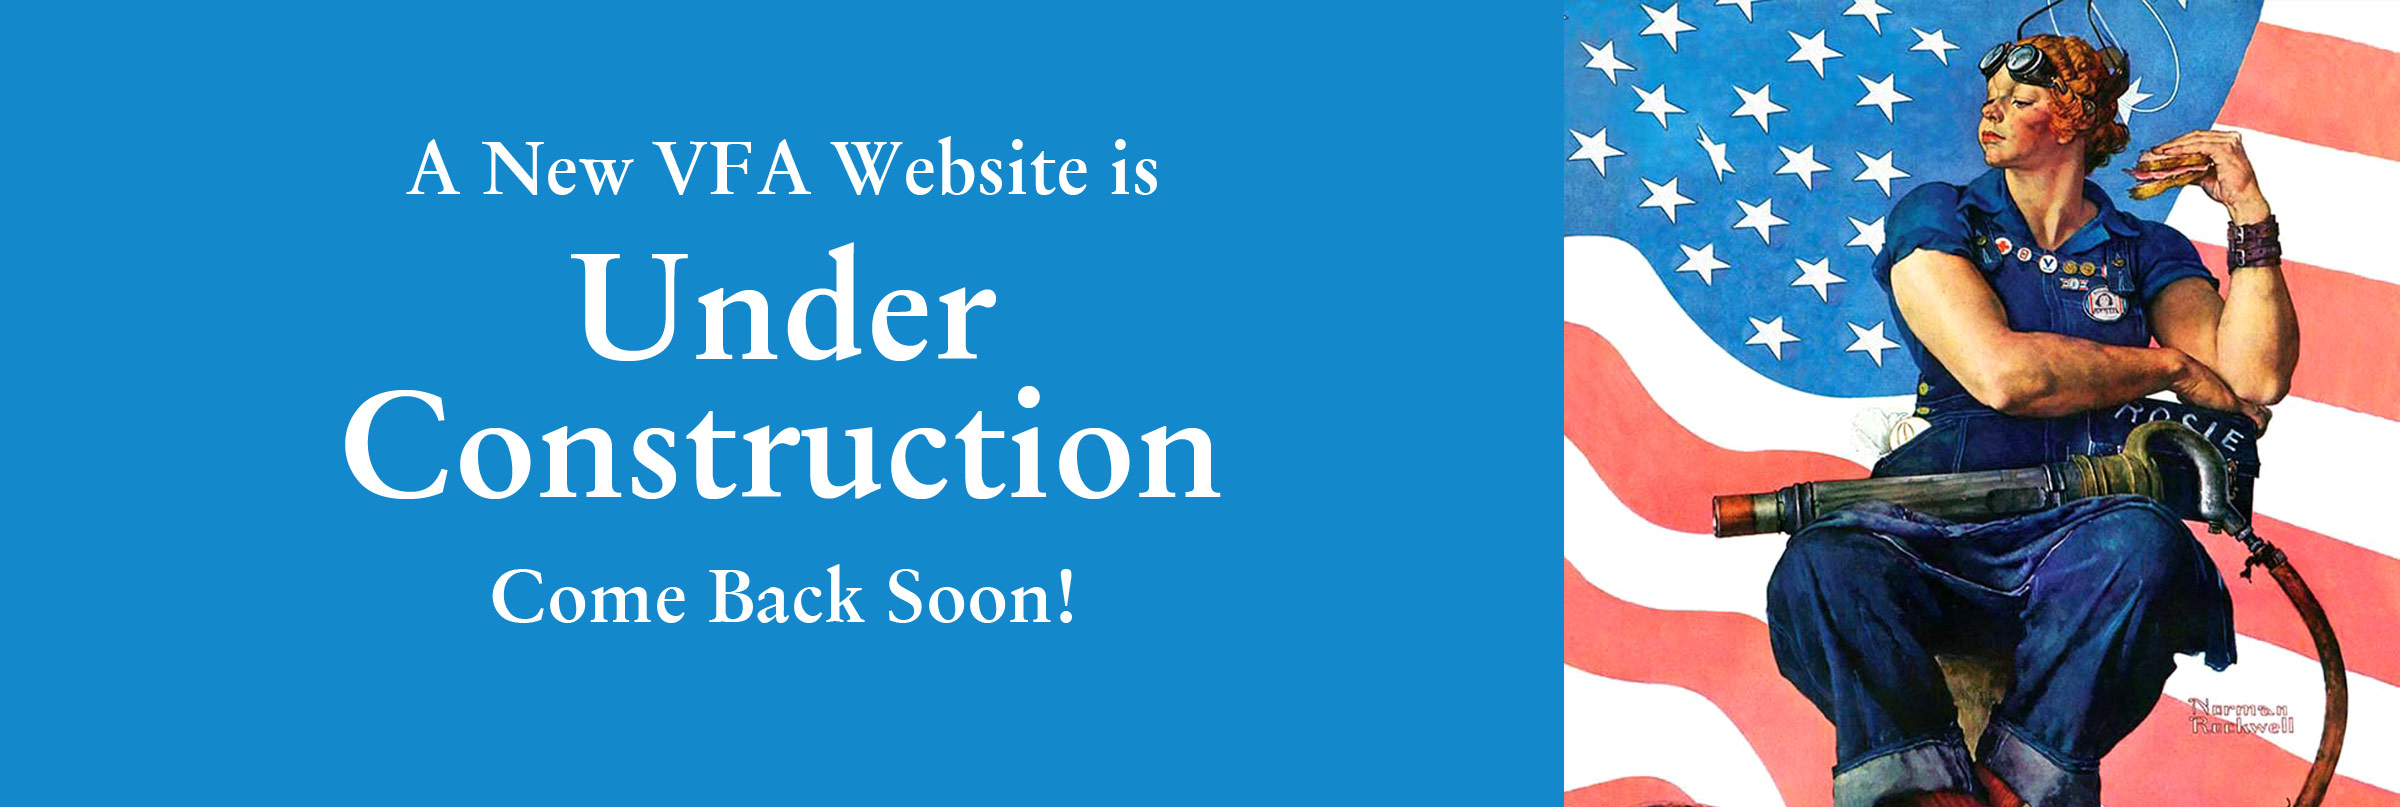 A New VFA Website is Under Construction